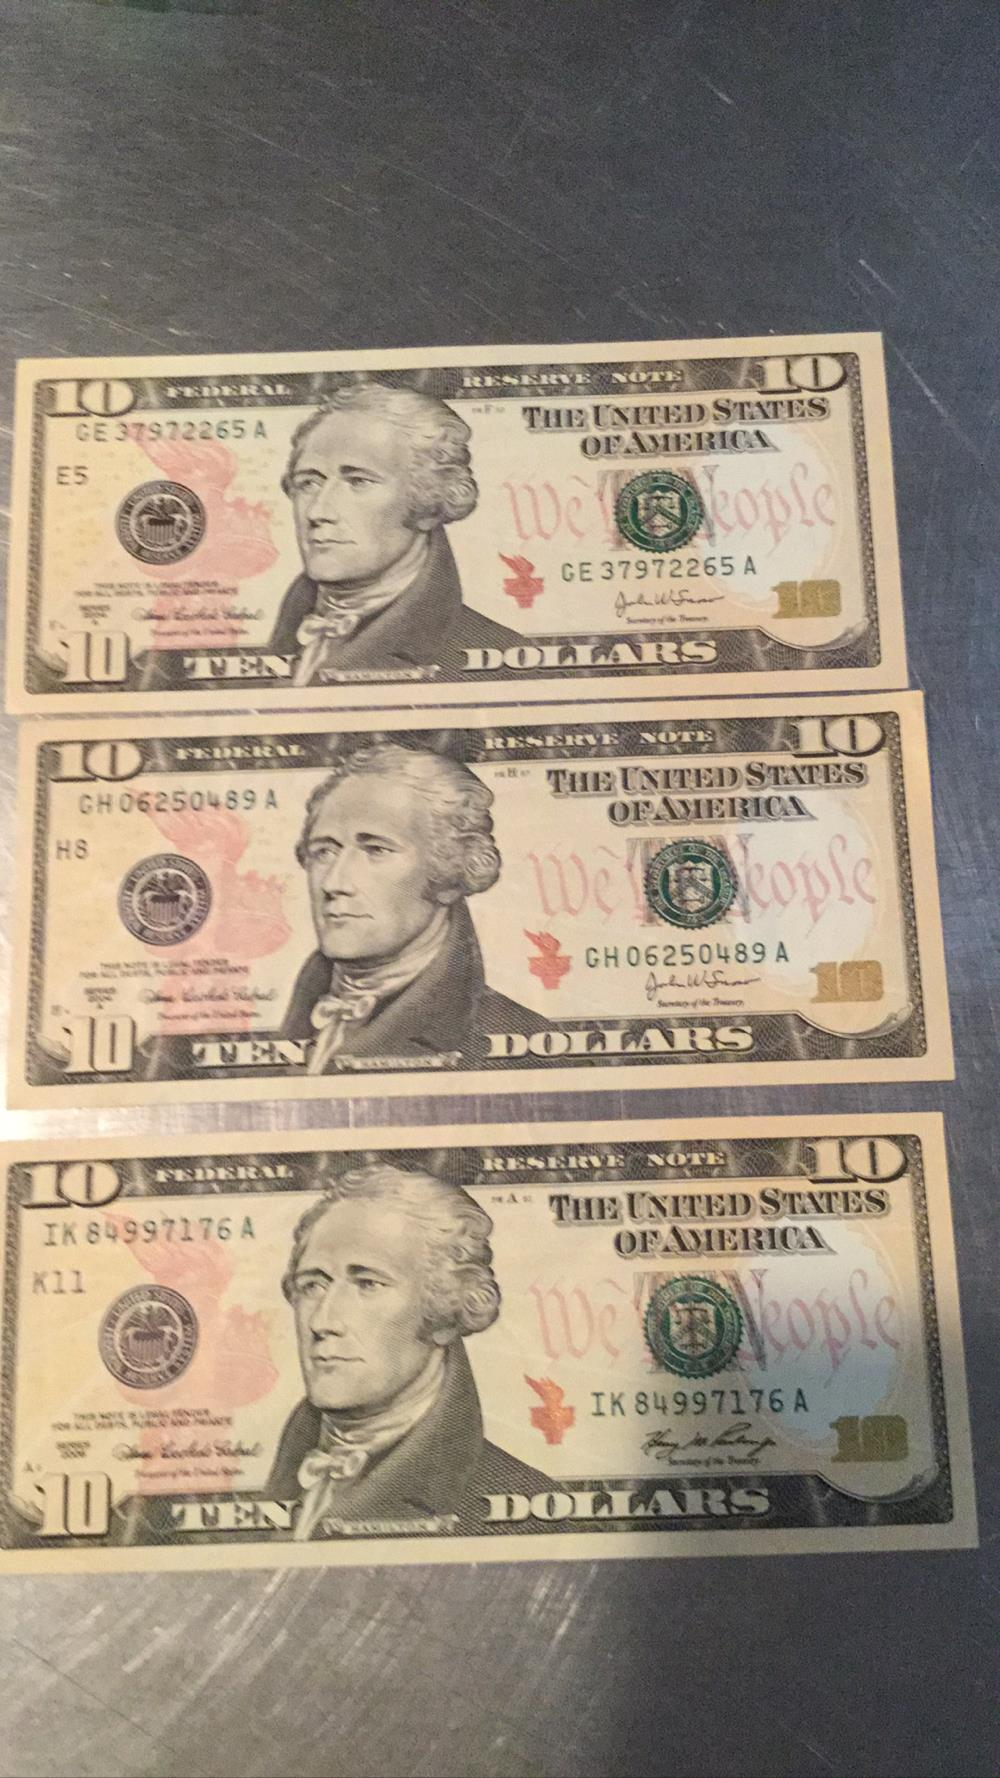 Three $10 bills